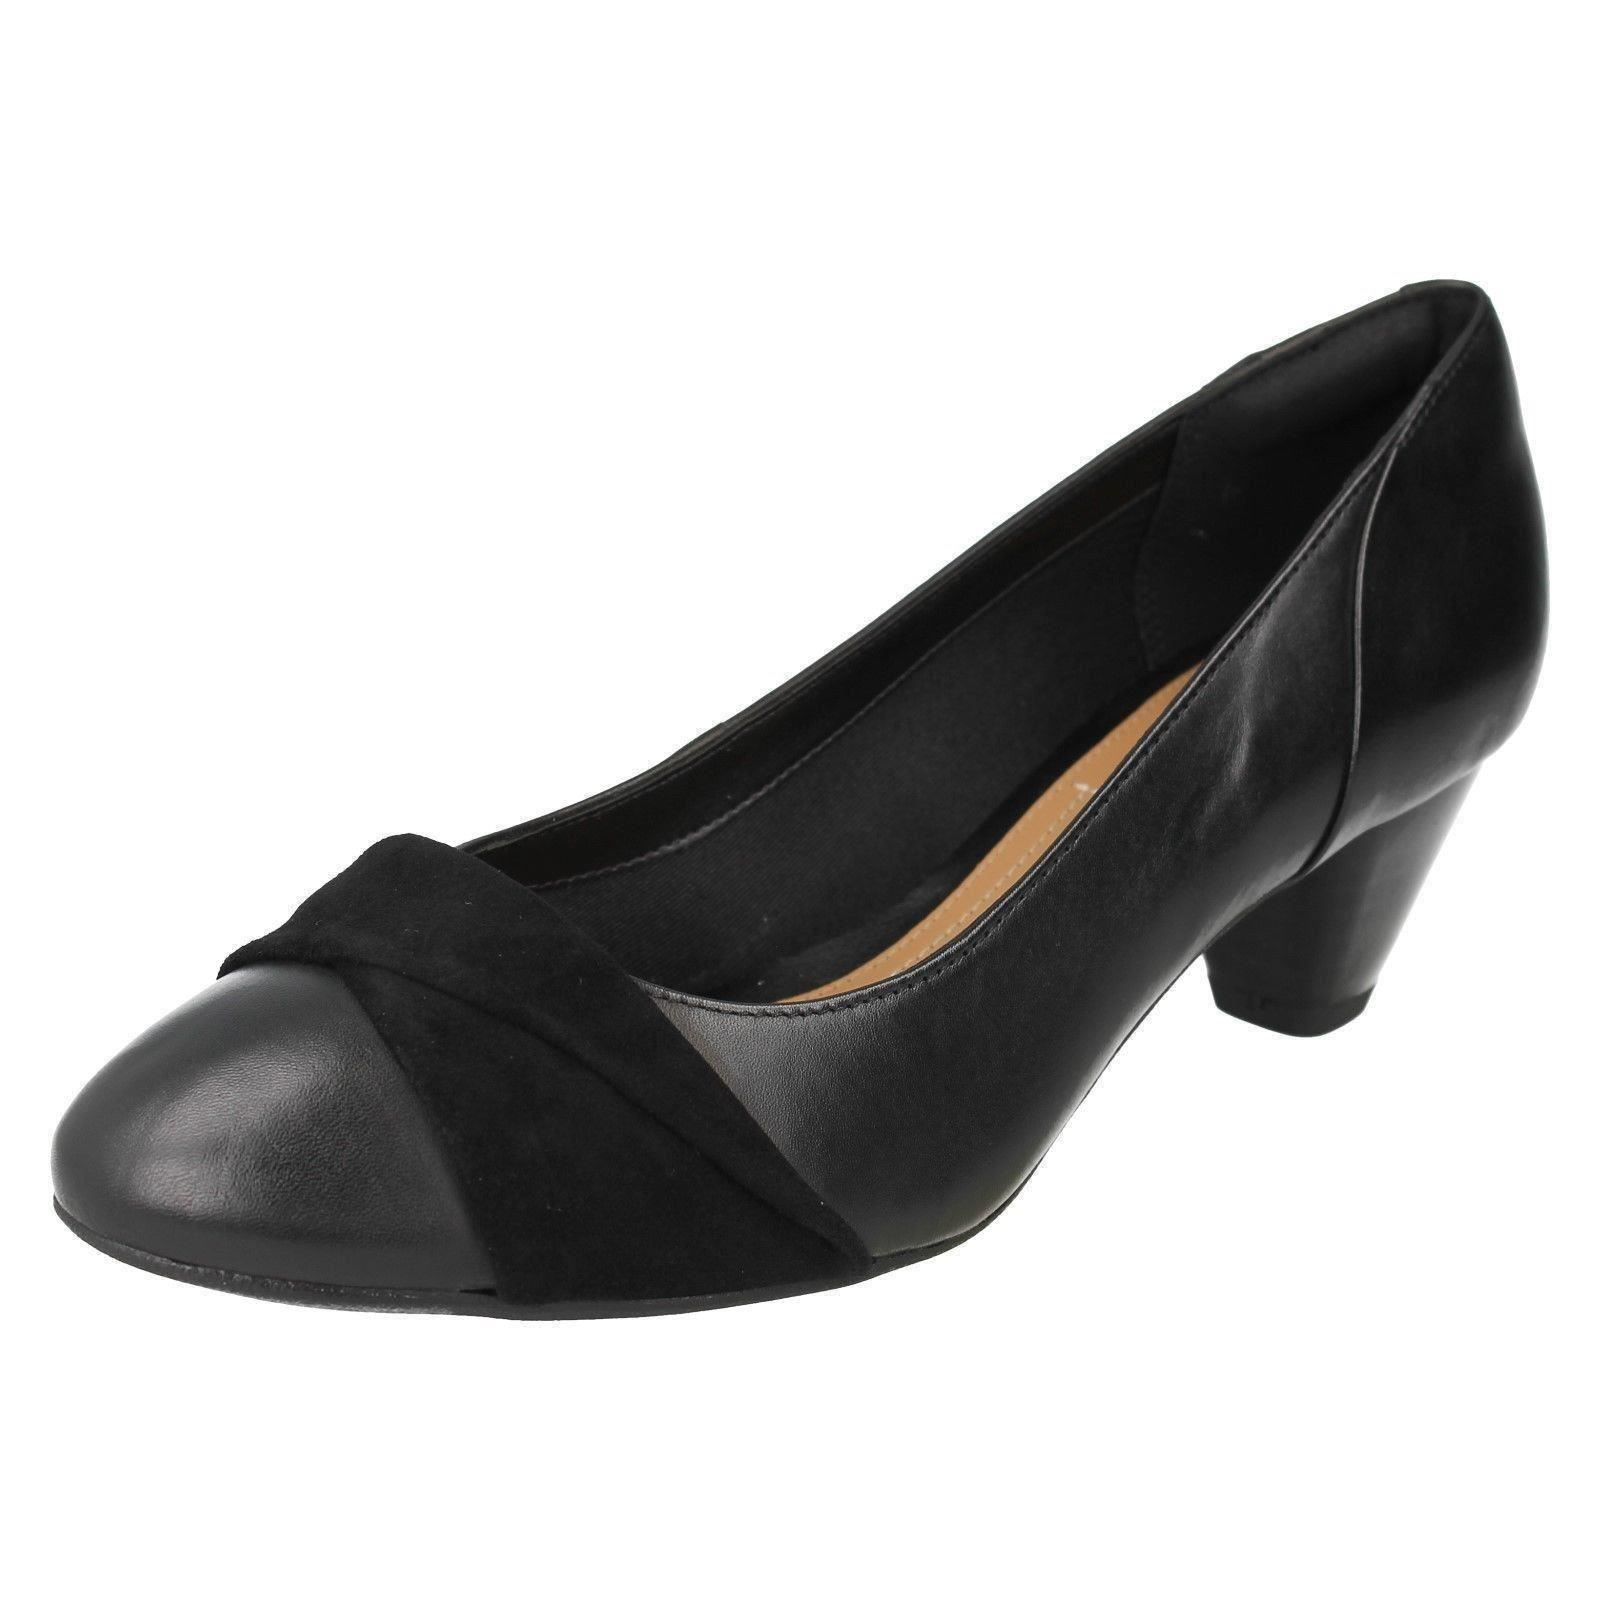 Ladies Clarks Formal UK Court Slip on HEELS Denny Louise UK Formal 6 schwarz ... f6486d